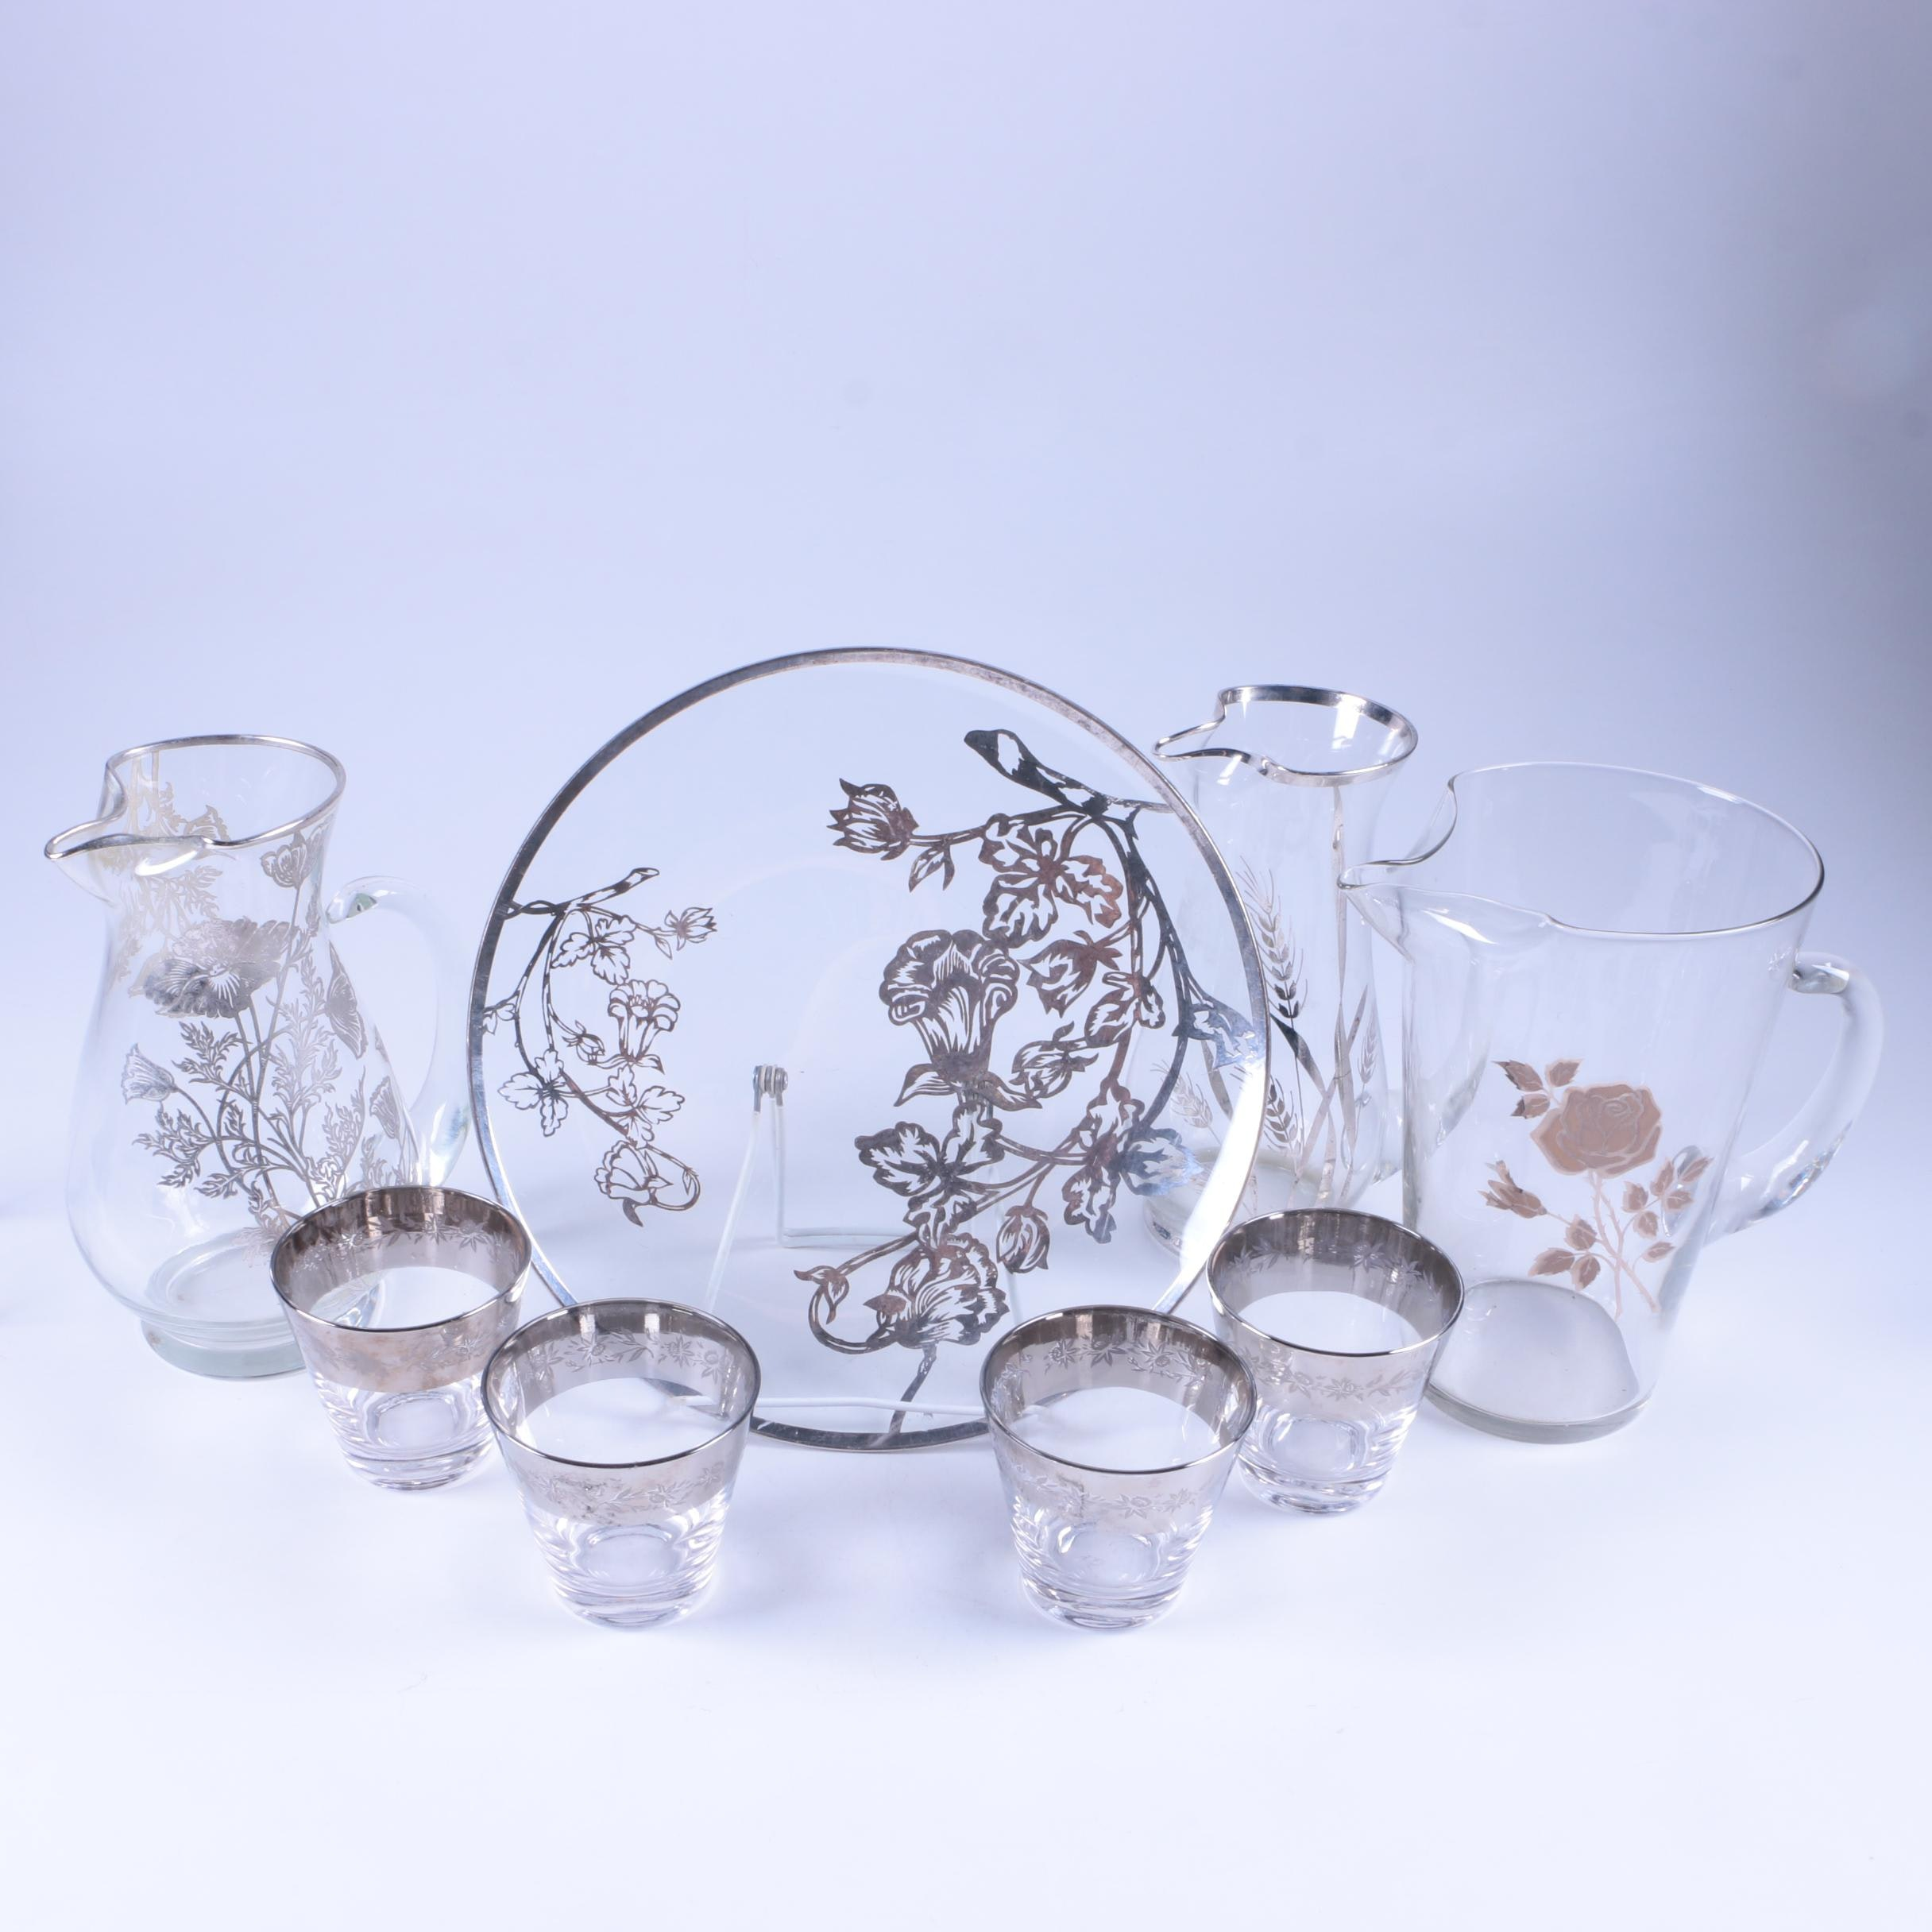 Silver Overlay Clear Glass Tumblers, Pitchers and Tray